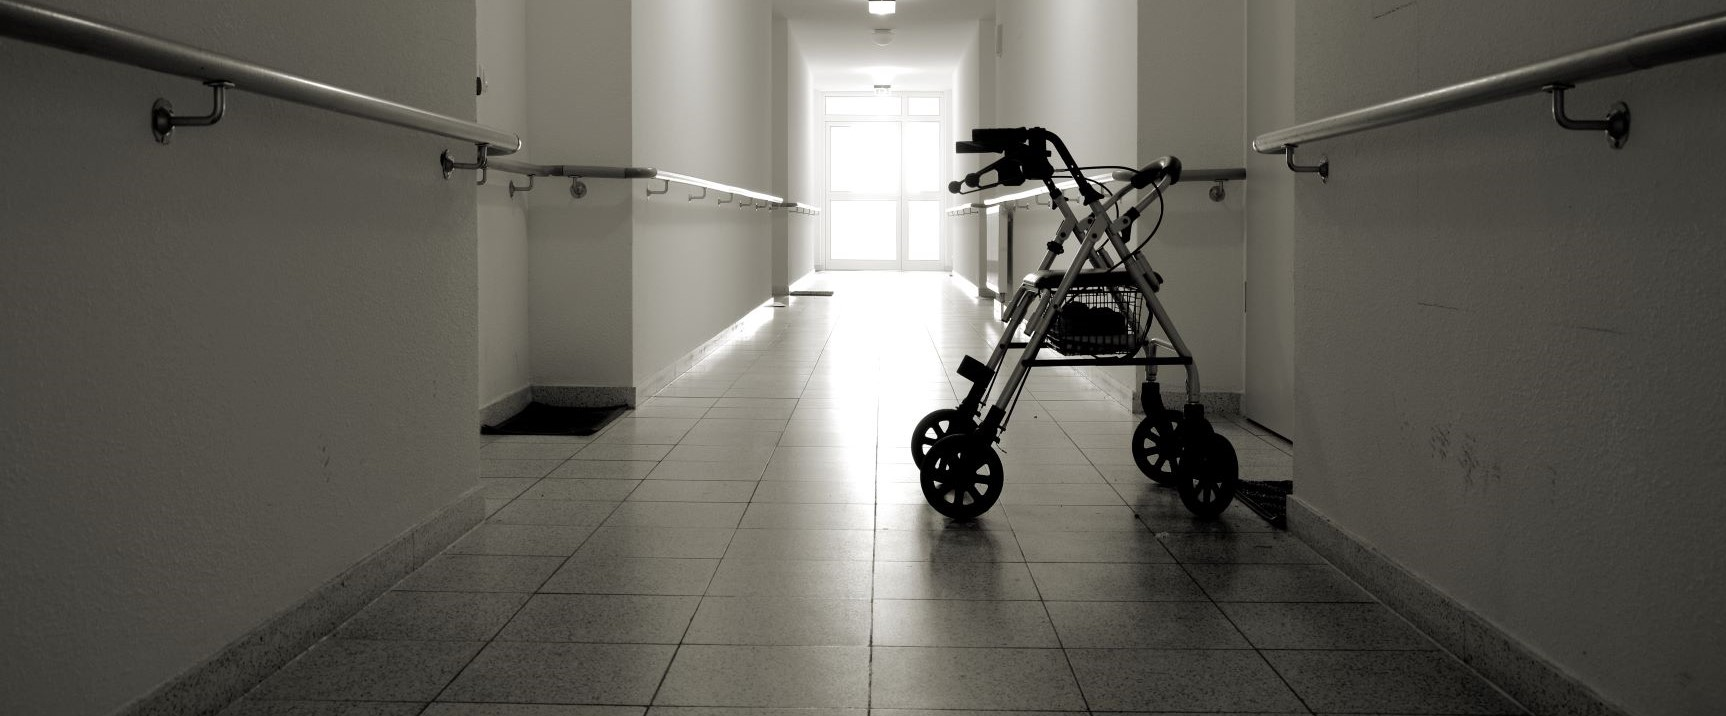 Whistleblower Legislation in the Aged Care Sector